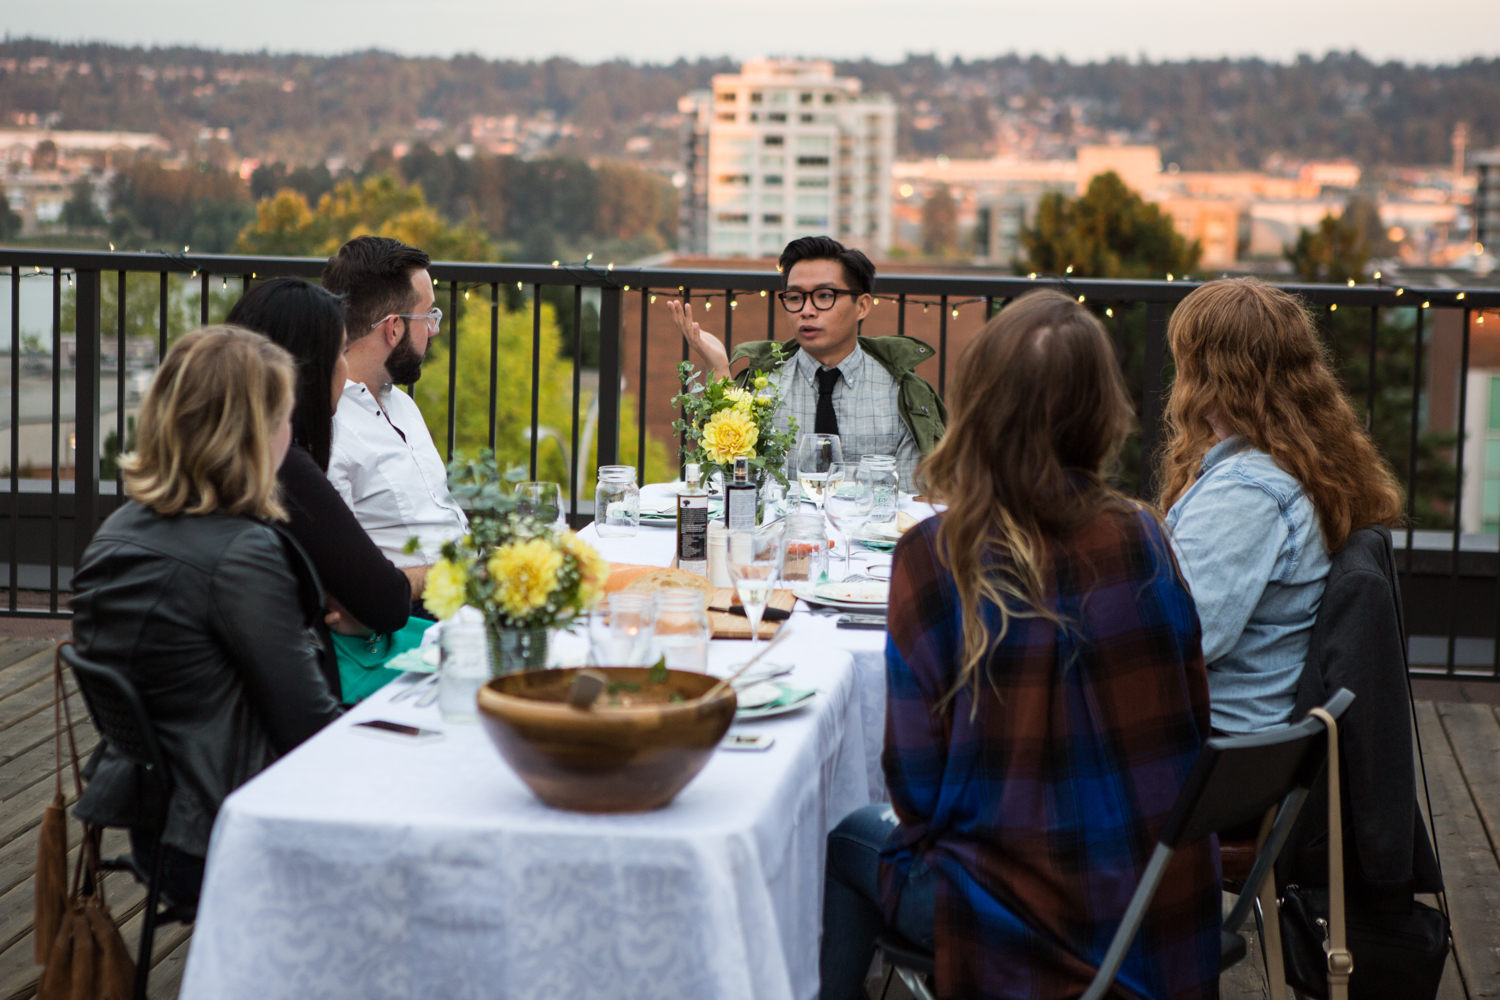 New-Westminster-Rooftop-Dinner-Party_-Bolandia-1936.jpg